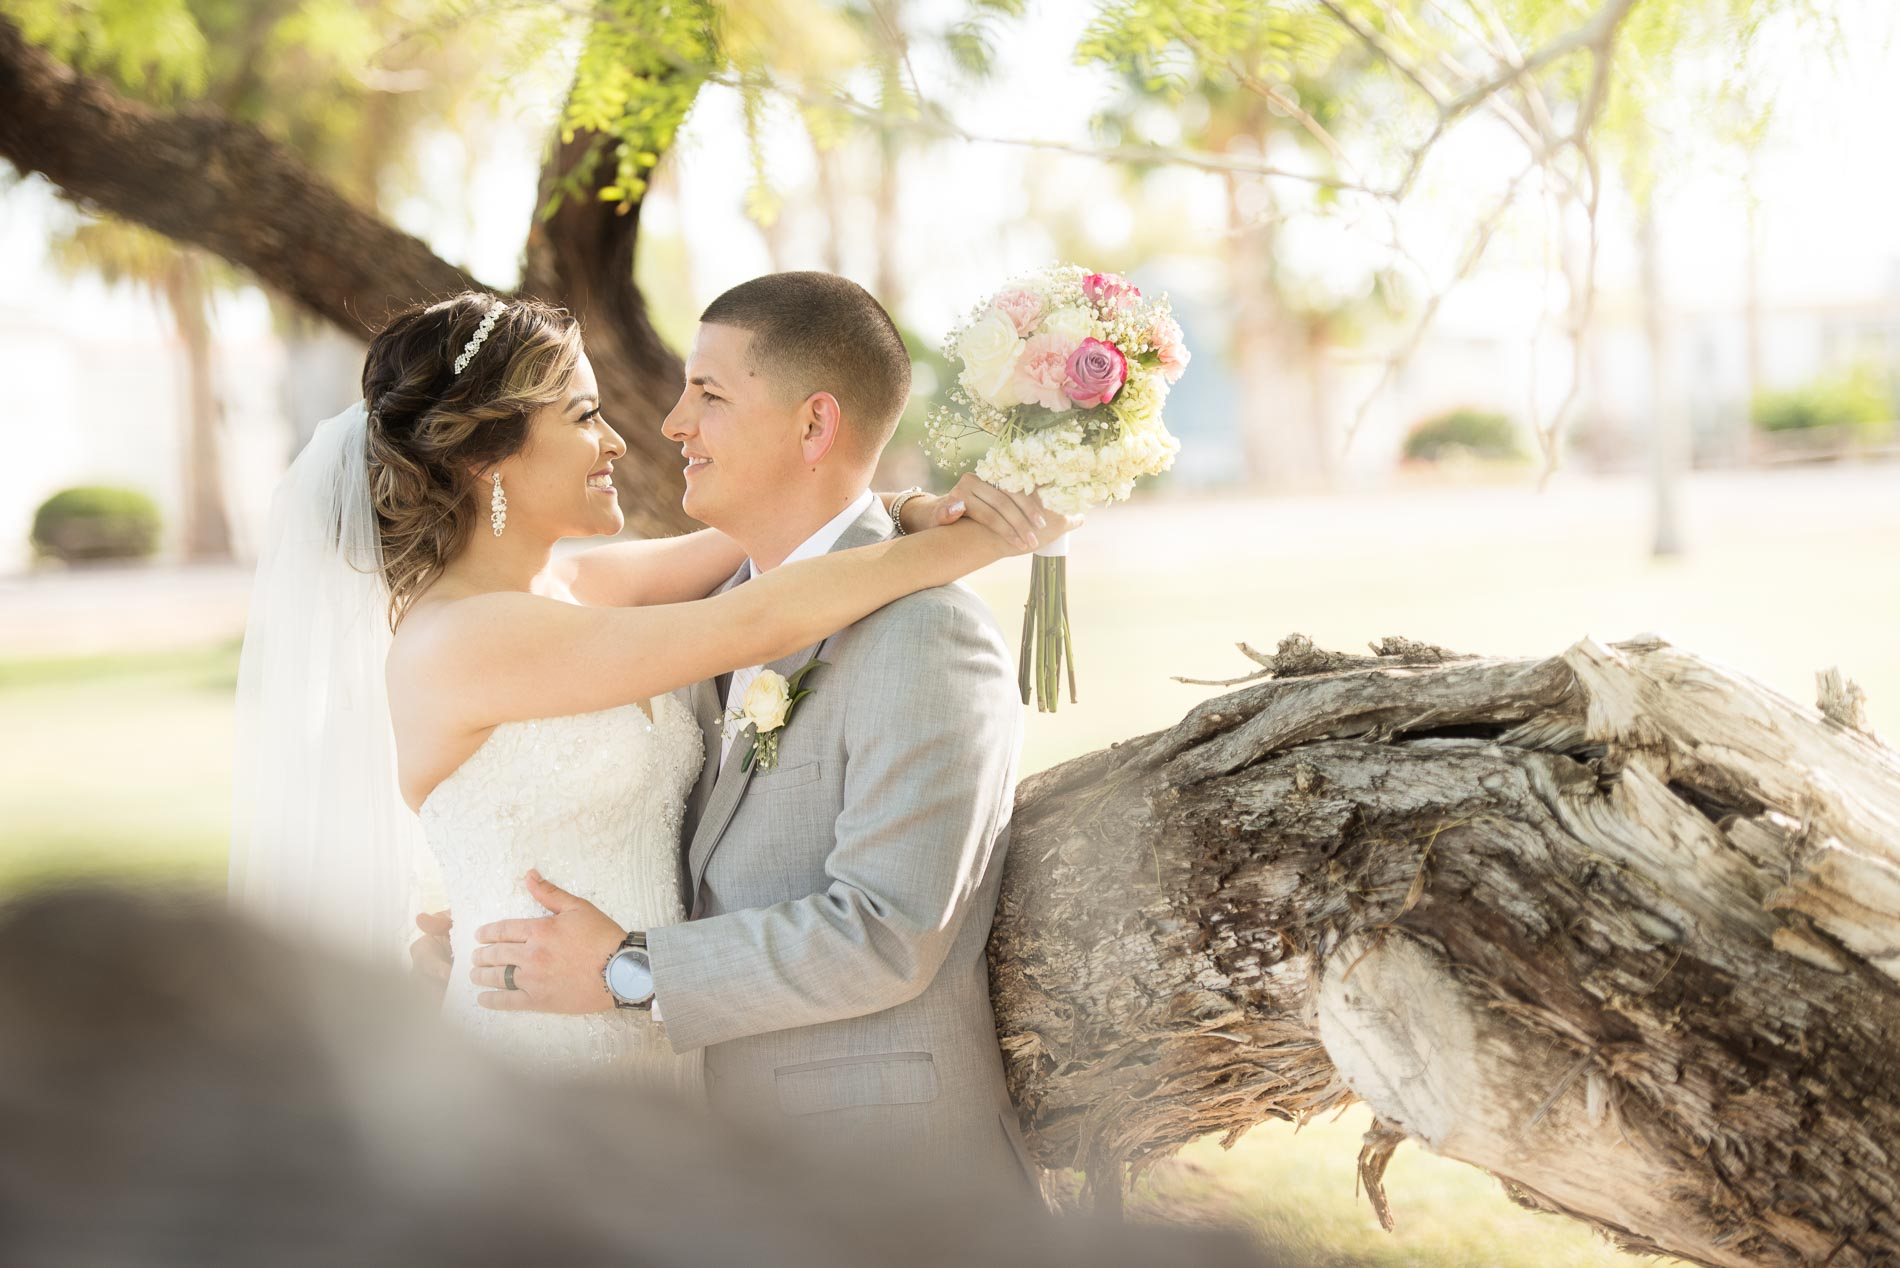 couple embrace rustic tree trunk wedding portrait session